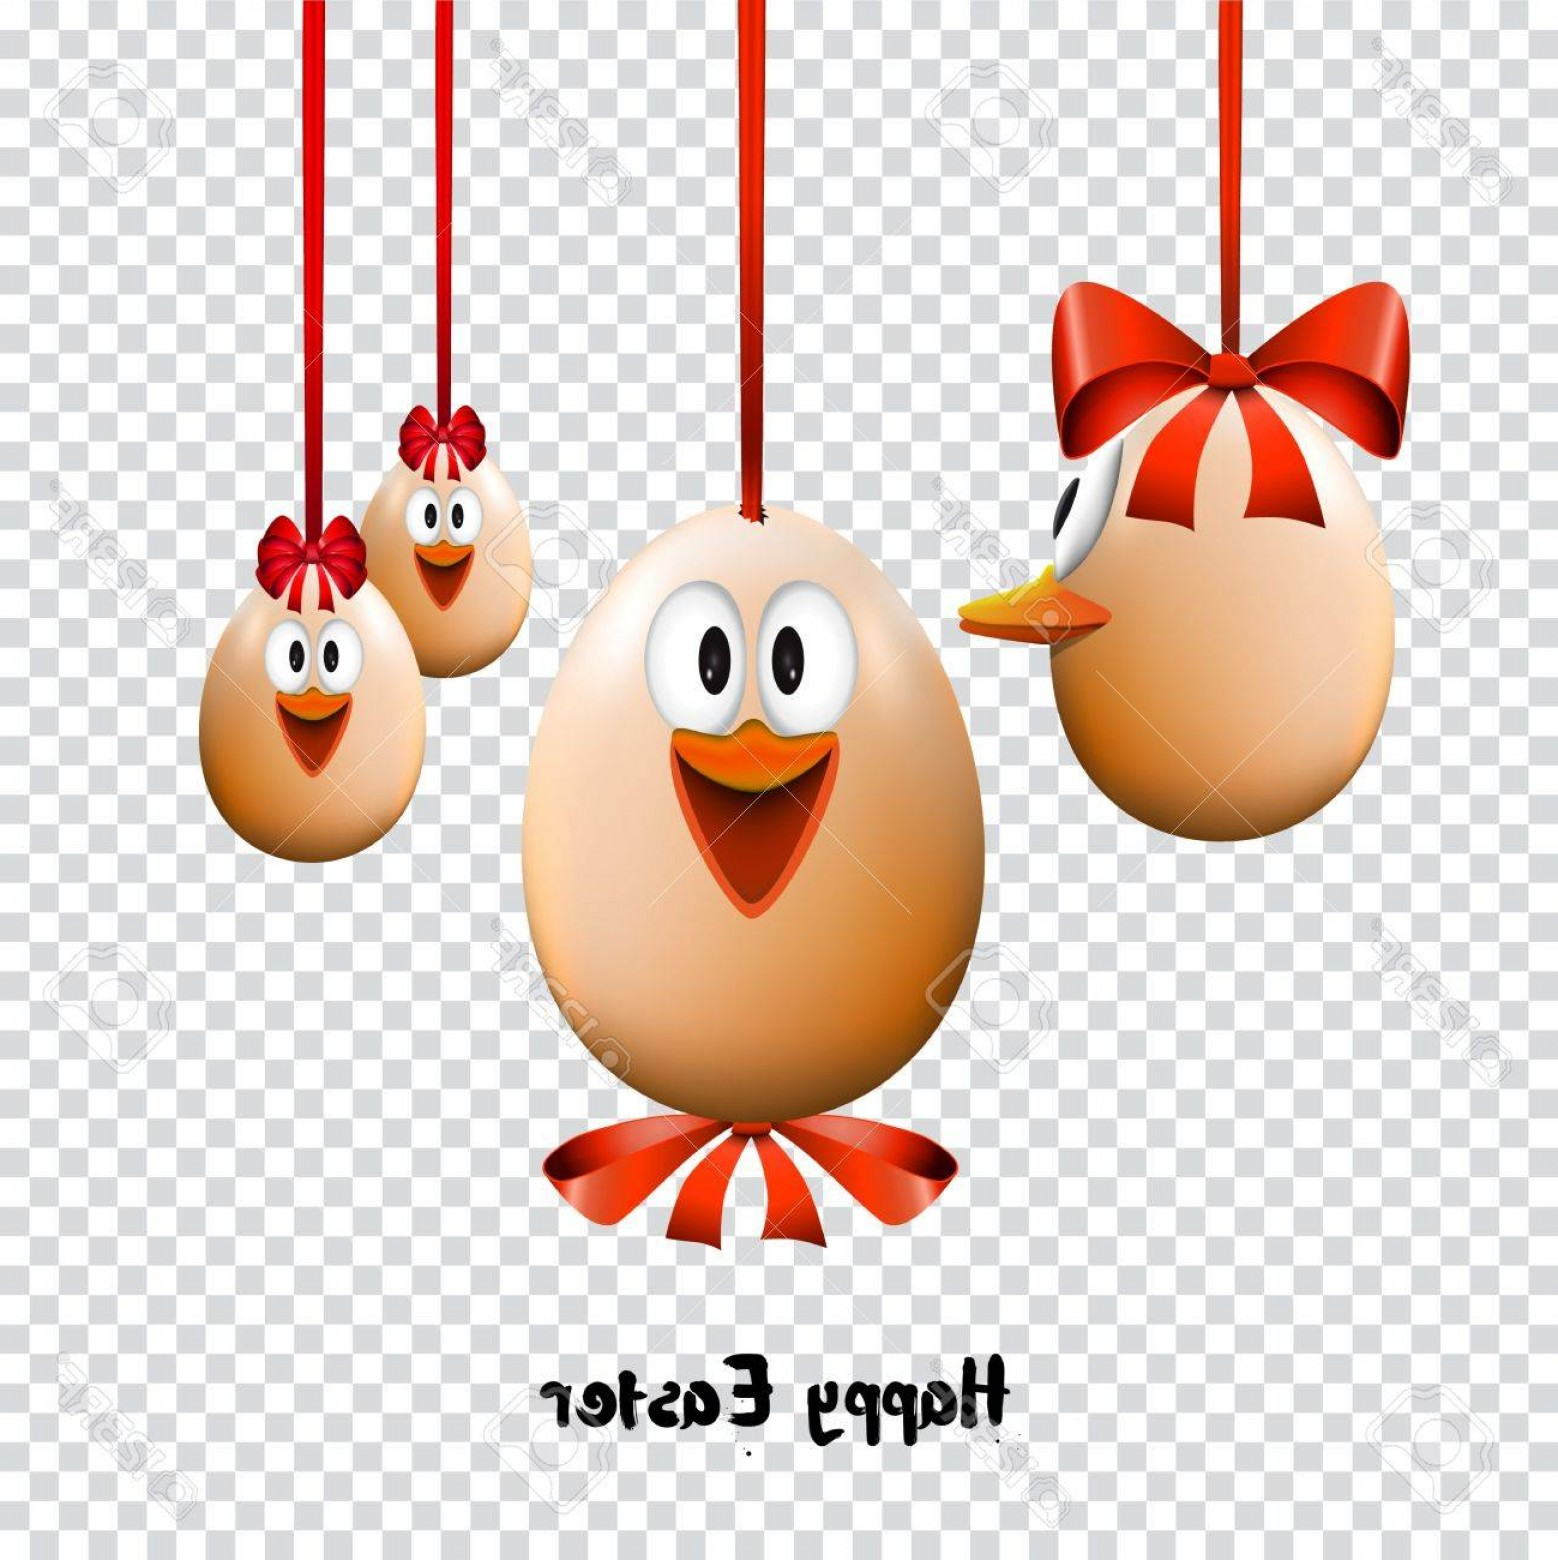 Easter Vector Art No Background: Photostock Vector Funny Easter Eggs With A Bow Happy Easter Card On Transparent Background